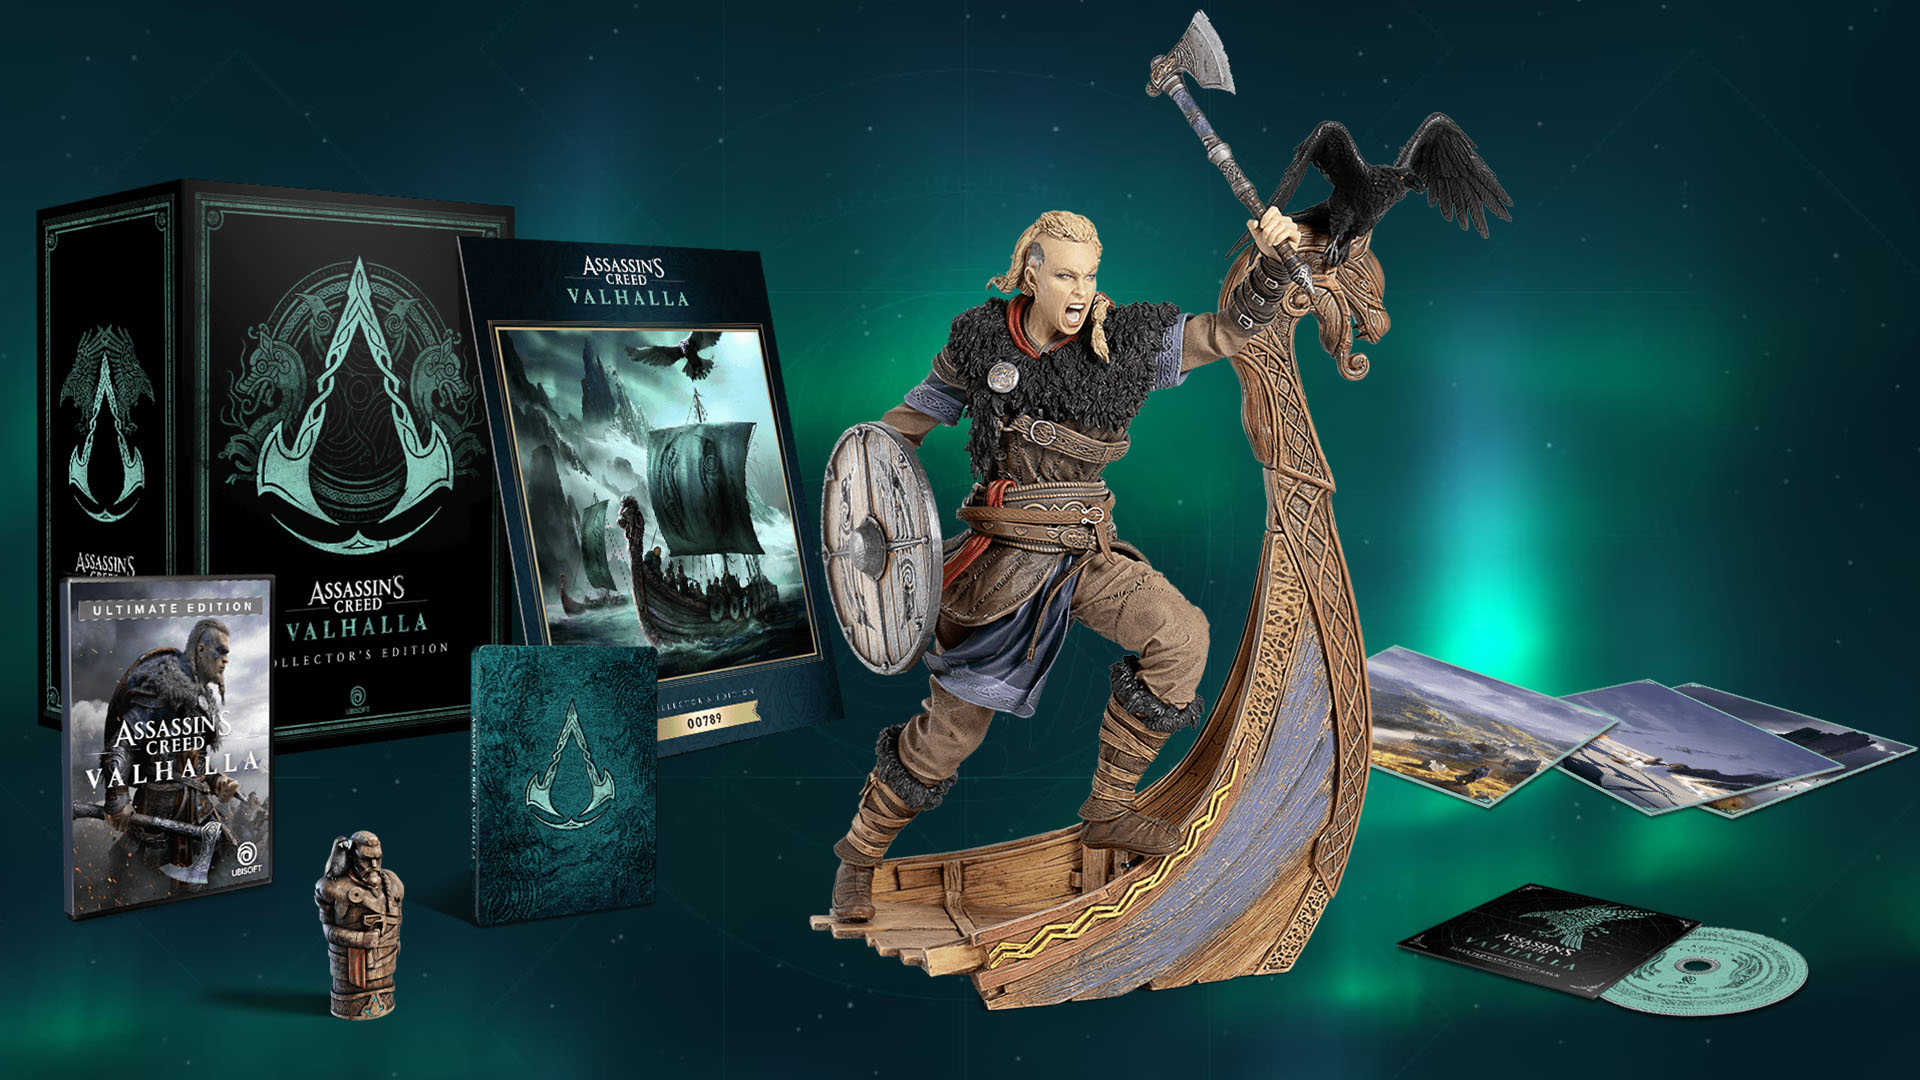 Assassin S Creed Valhalla Collector S Edition Features A Very